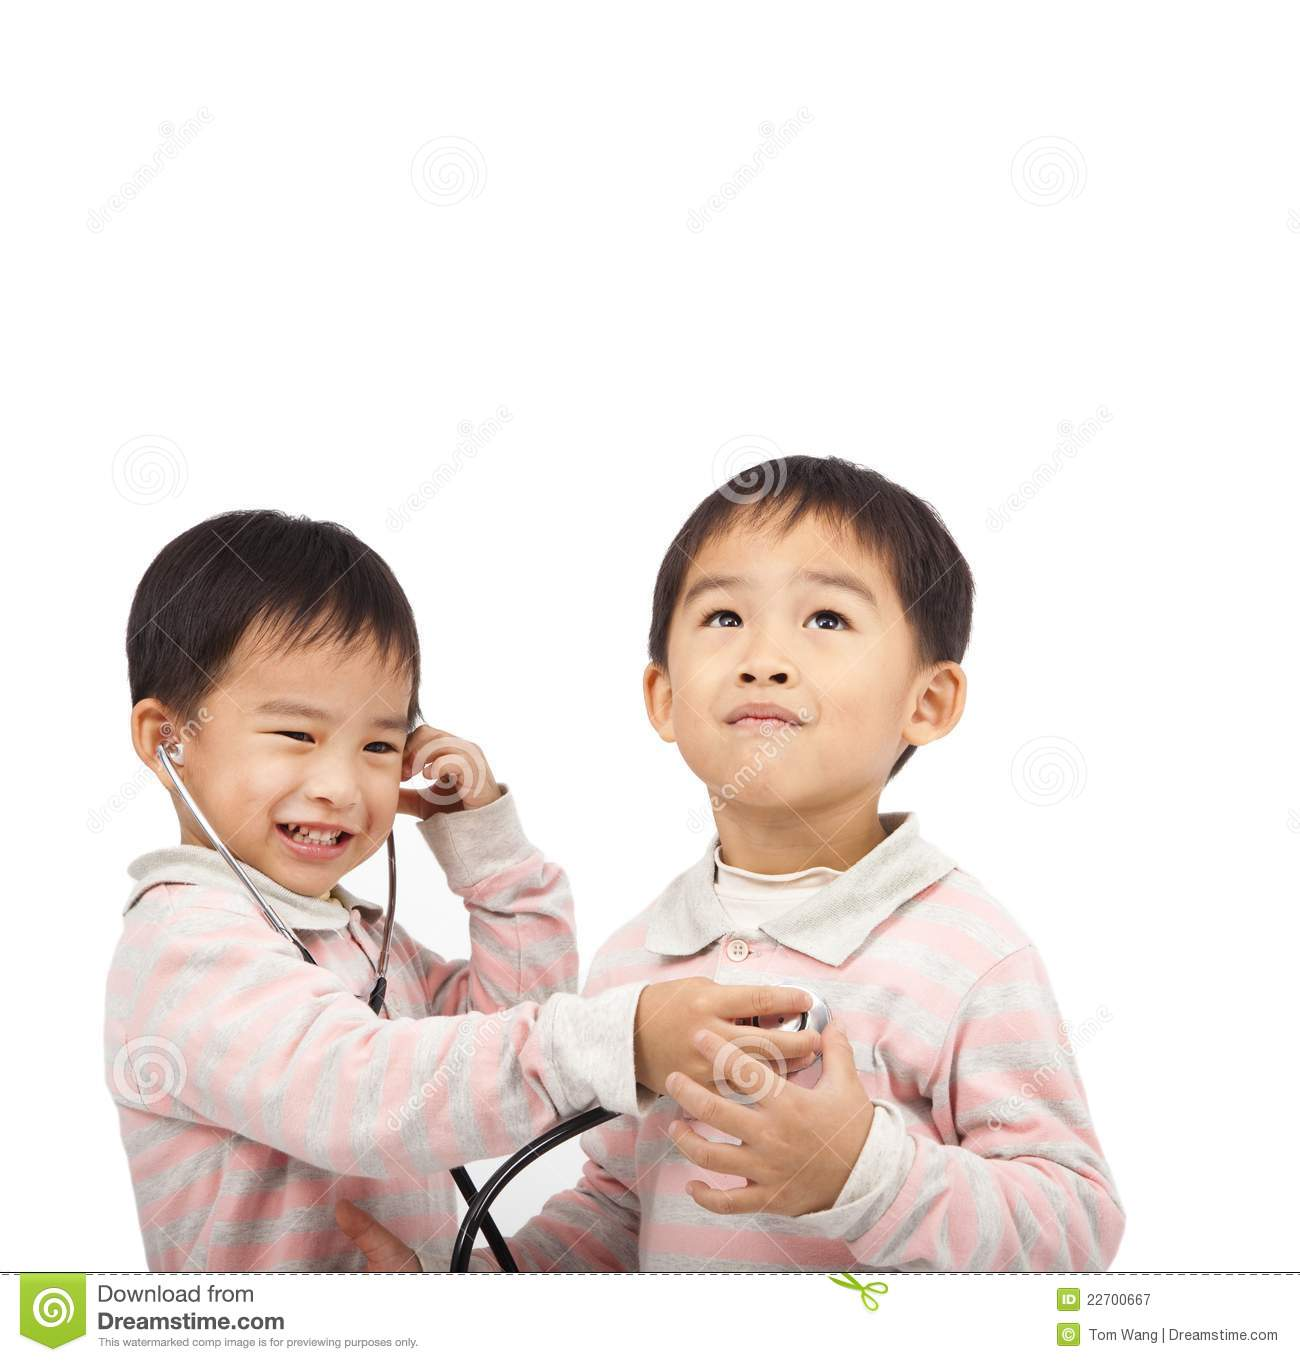 Kids with health examination by stethoscope